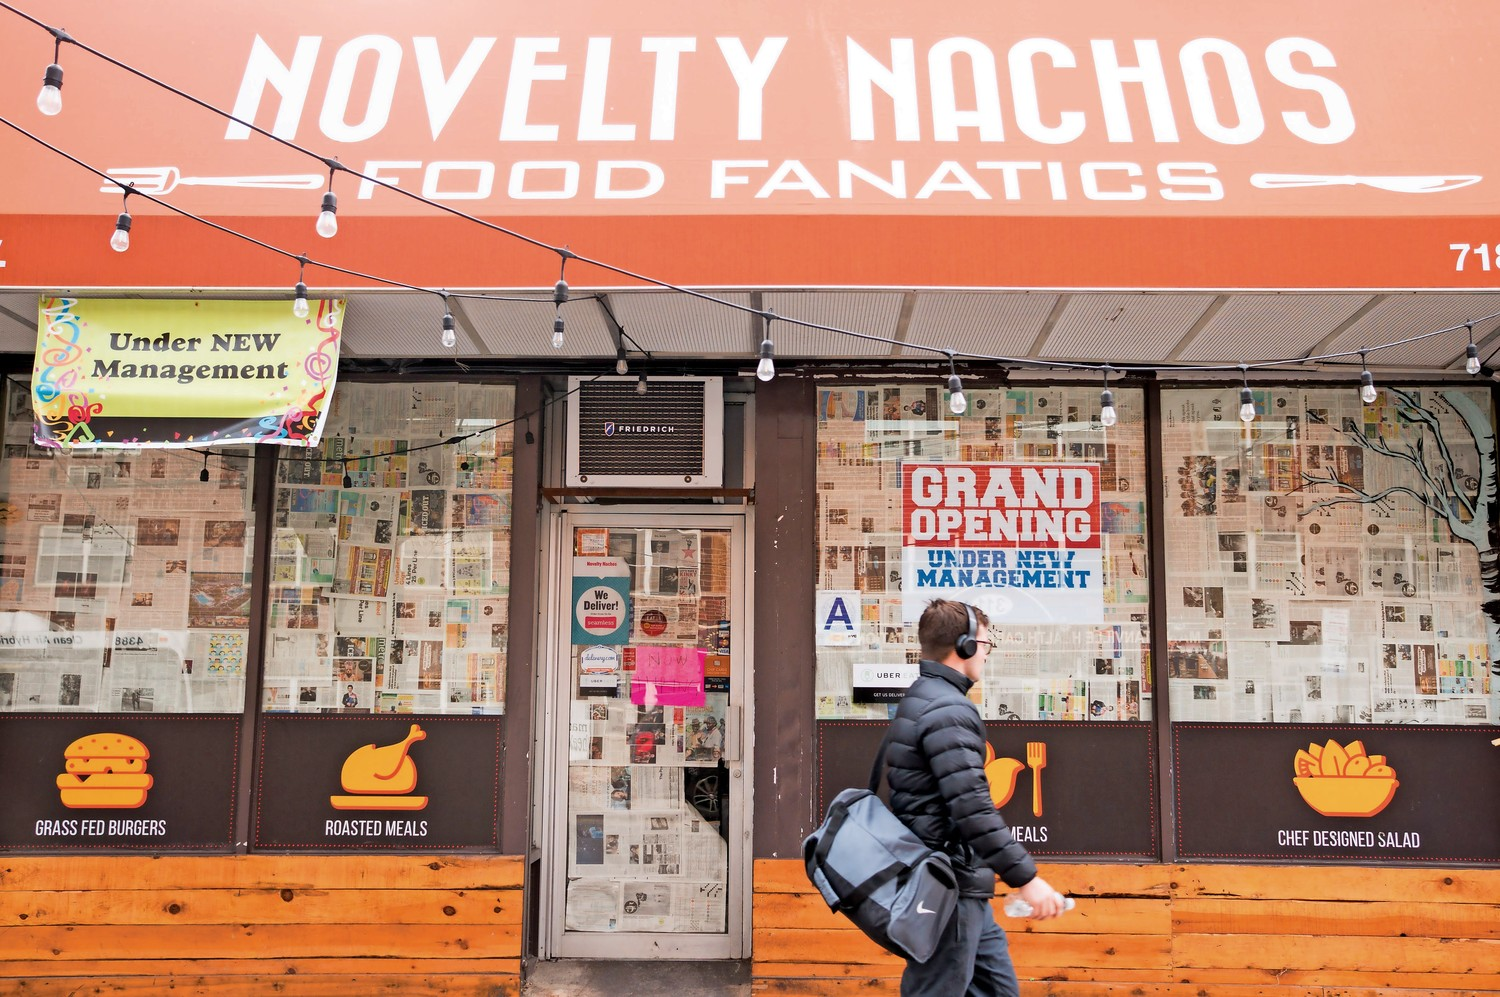 A pedestrian passes by what was once Novelty Nachos. The restaurant will reopen with a new name under new management.